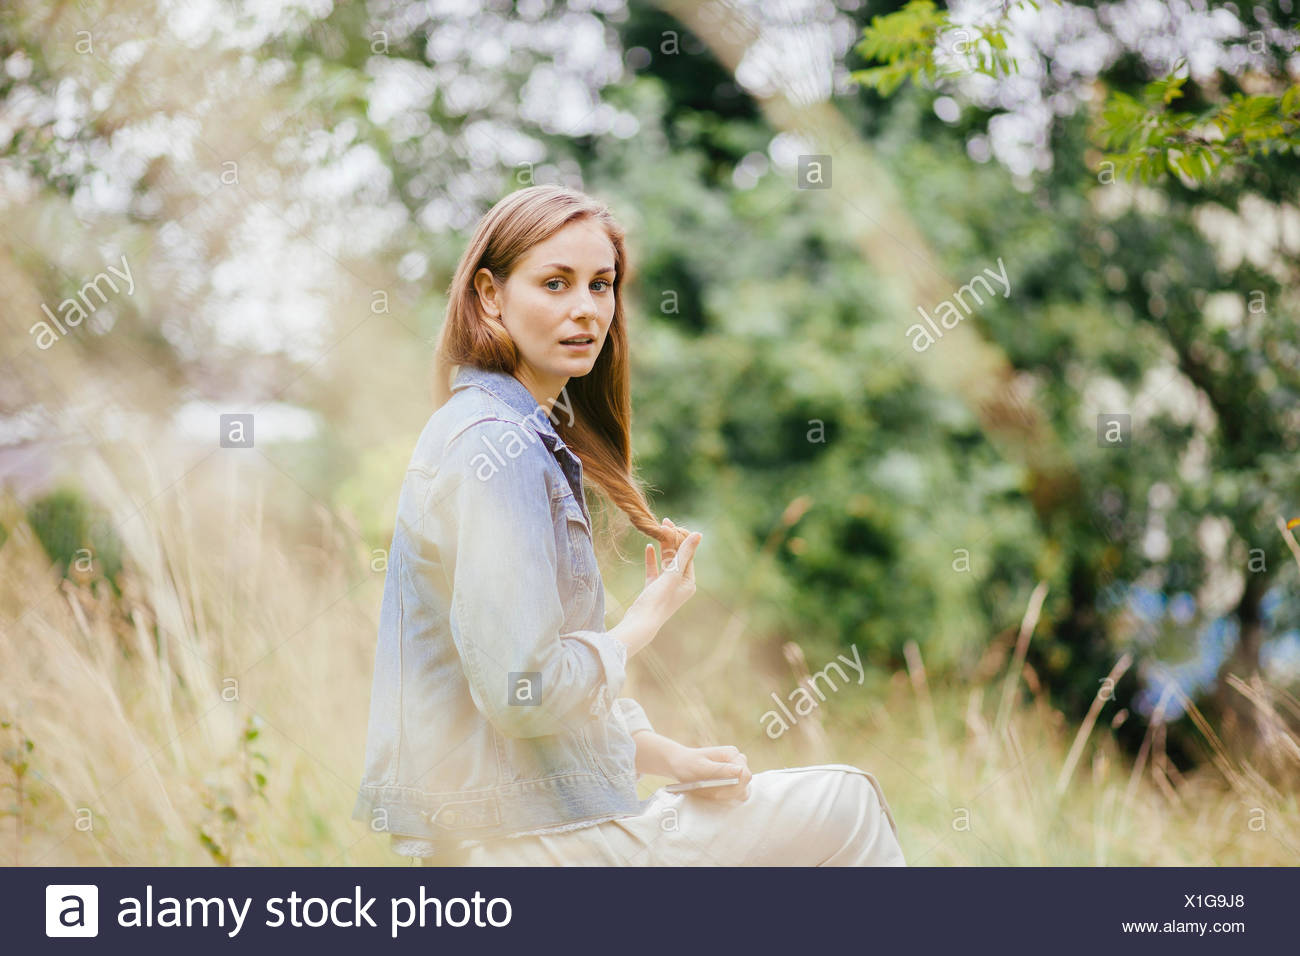 Portrait of young woman with hand in hair in field - Stock Image